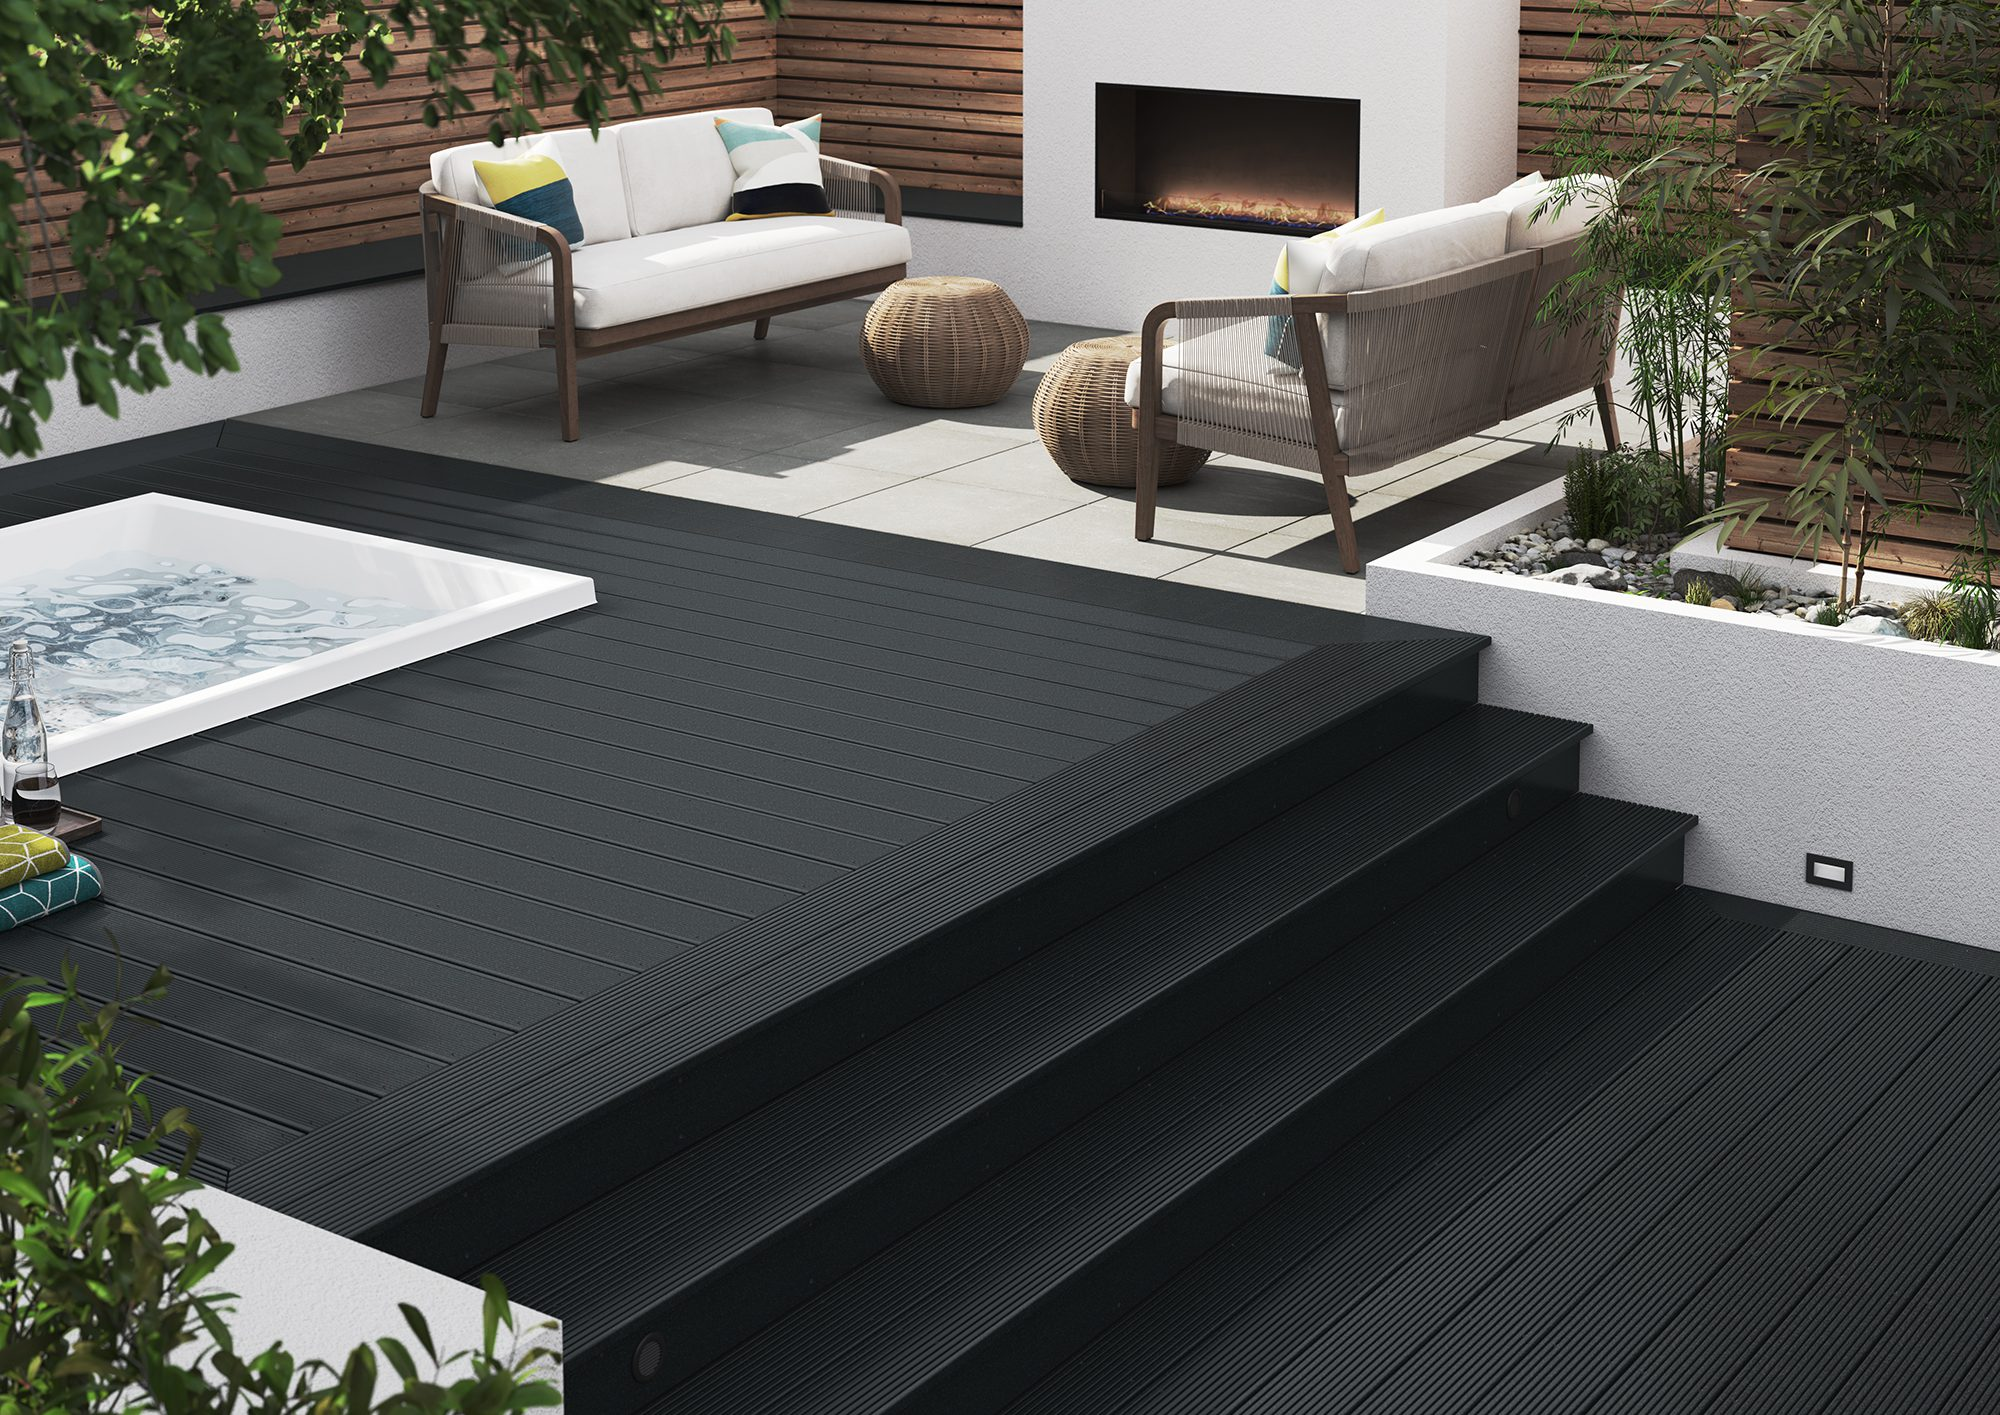 Black Composite Decking with hot tub